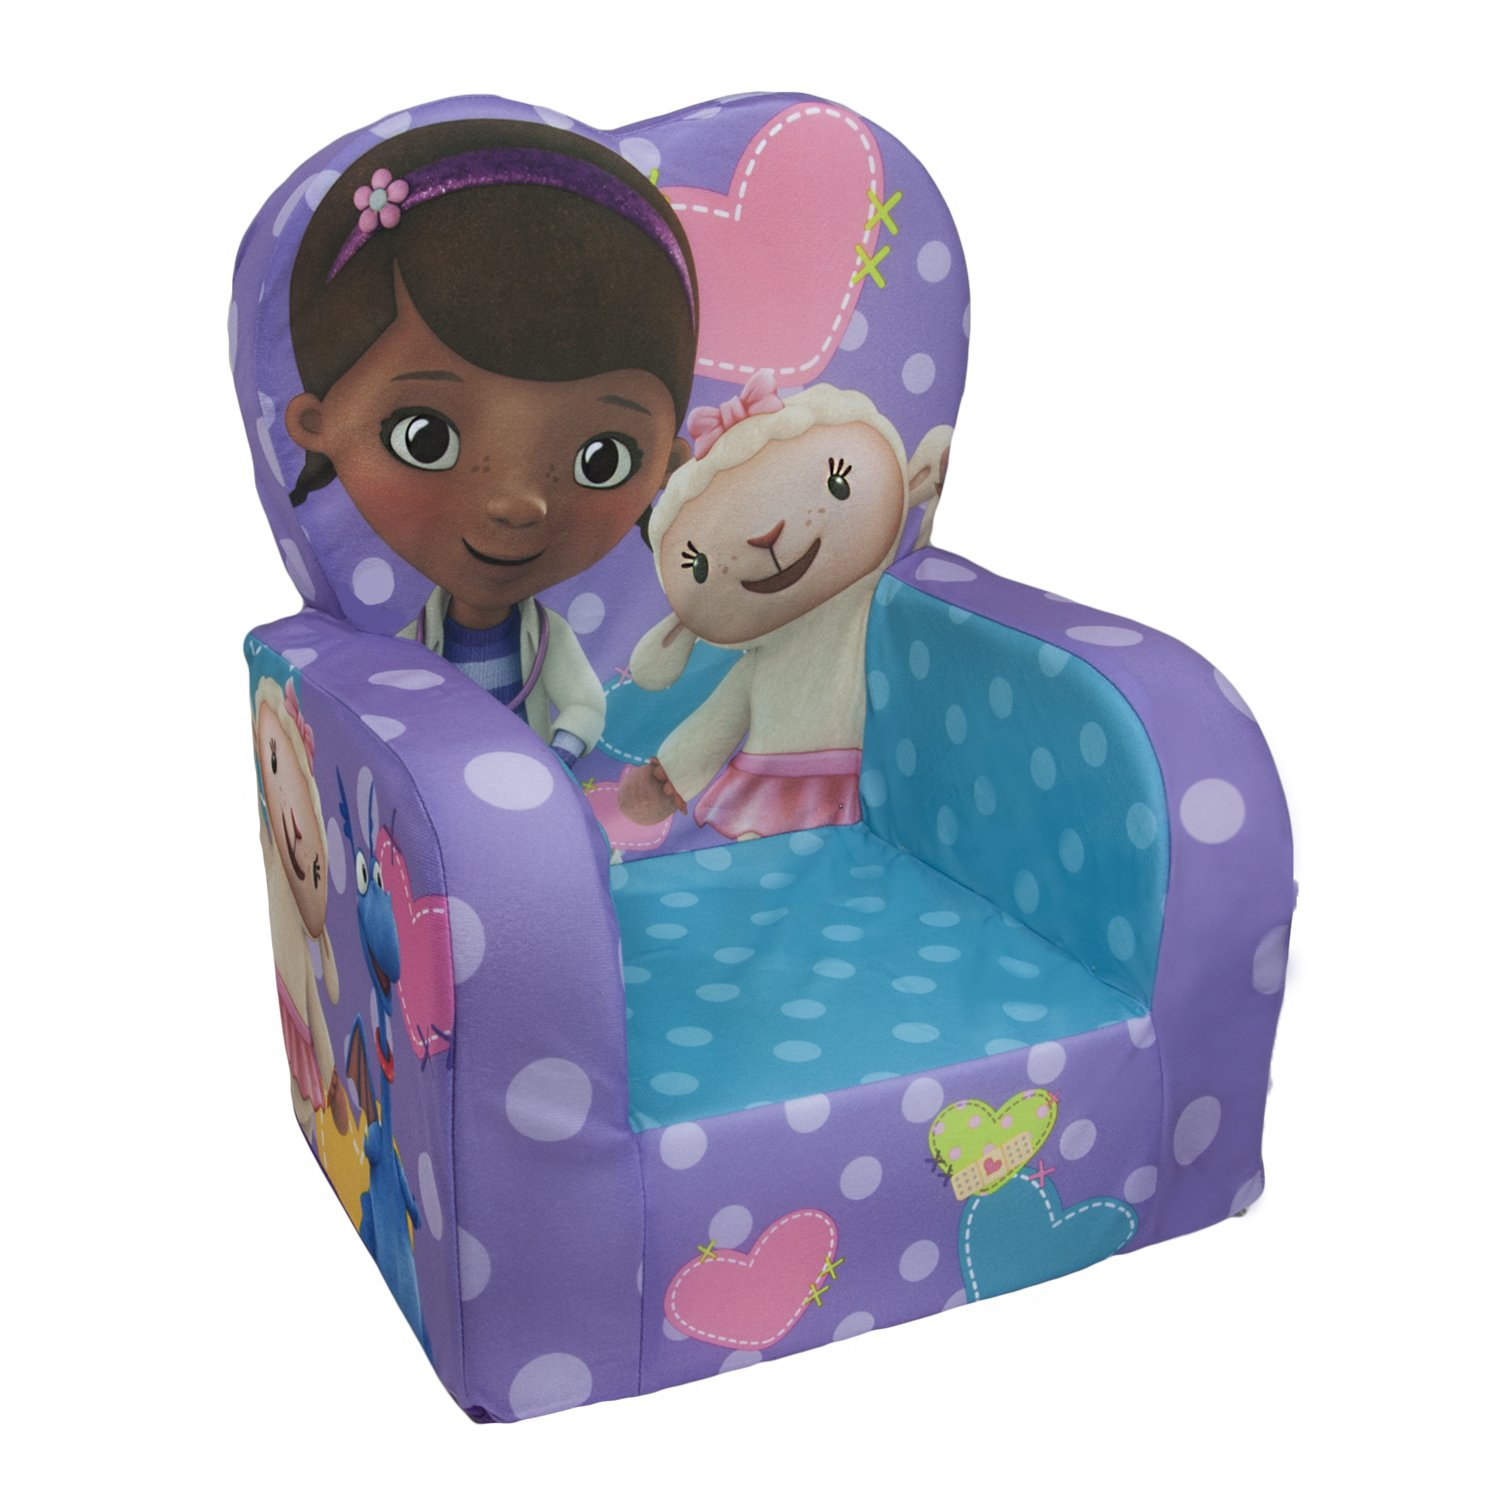 Fun doc mcstuffins seating